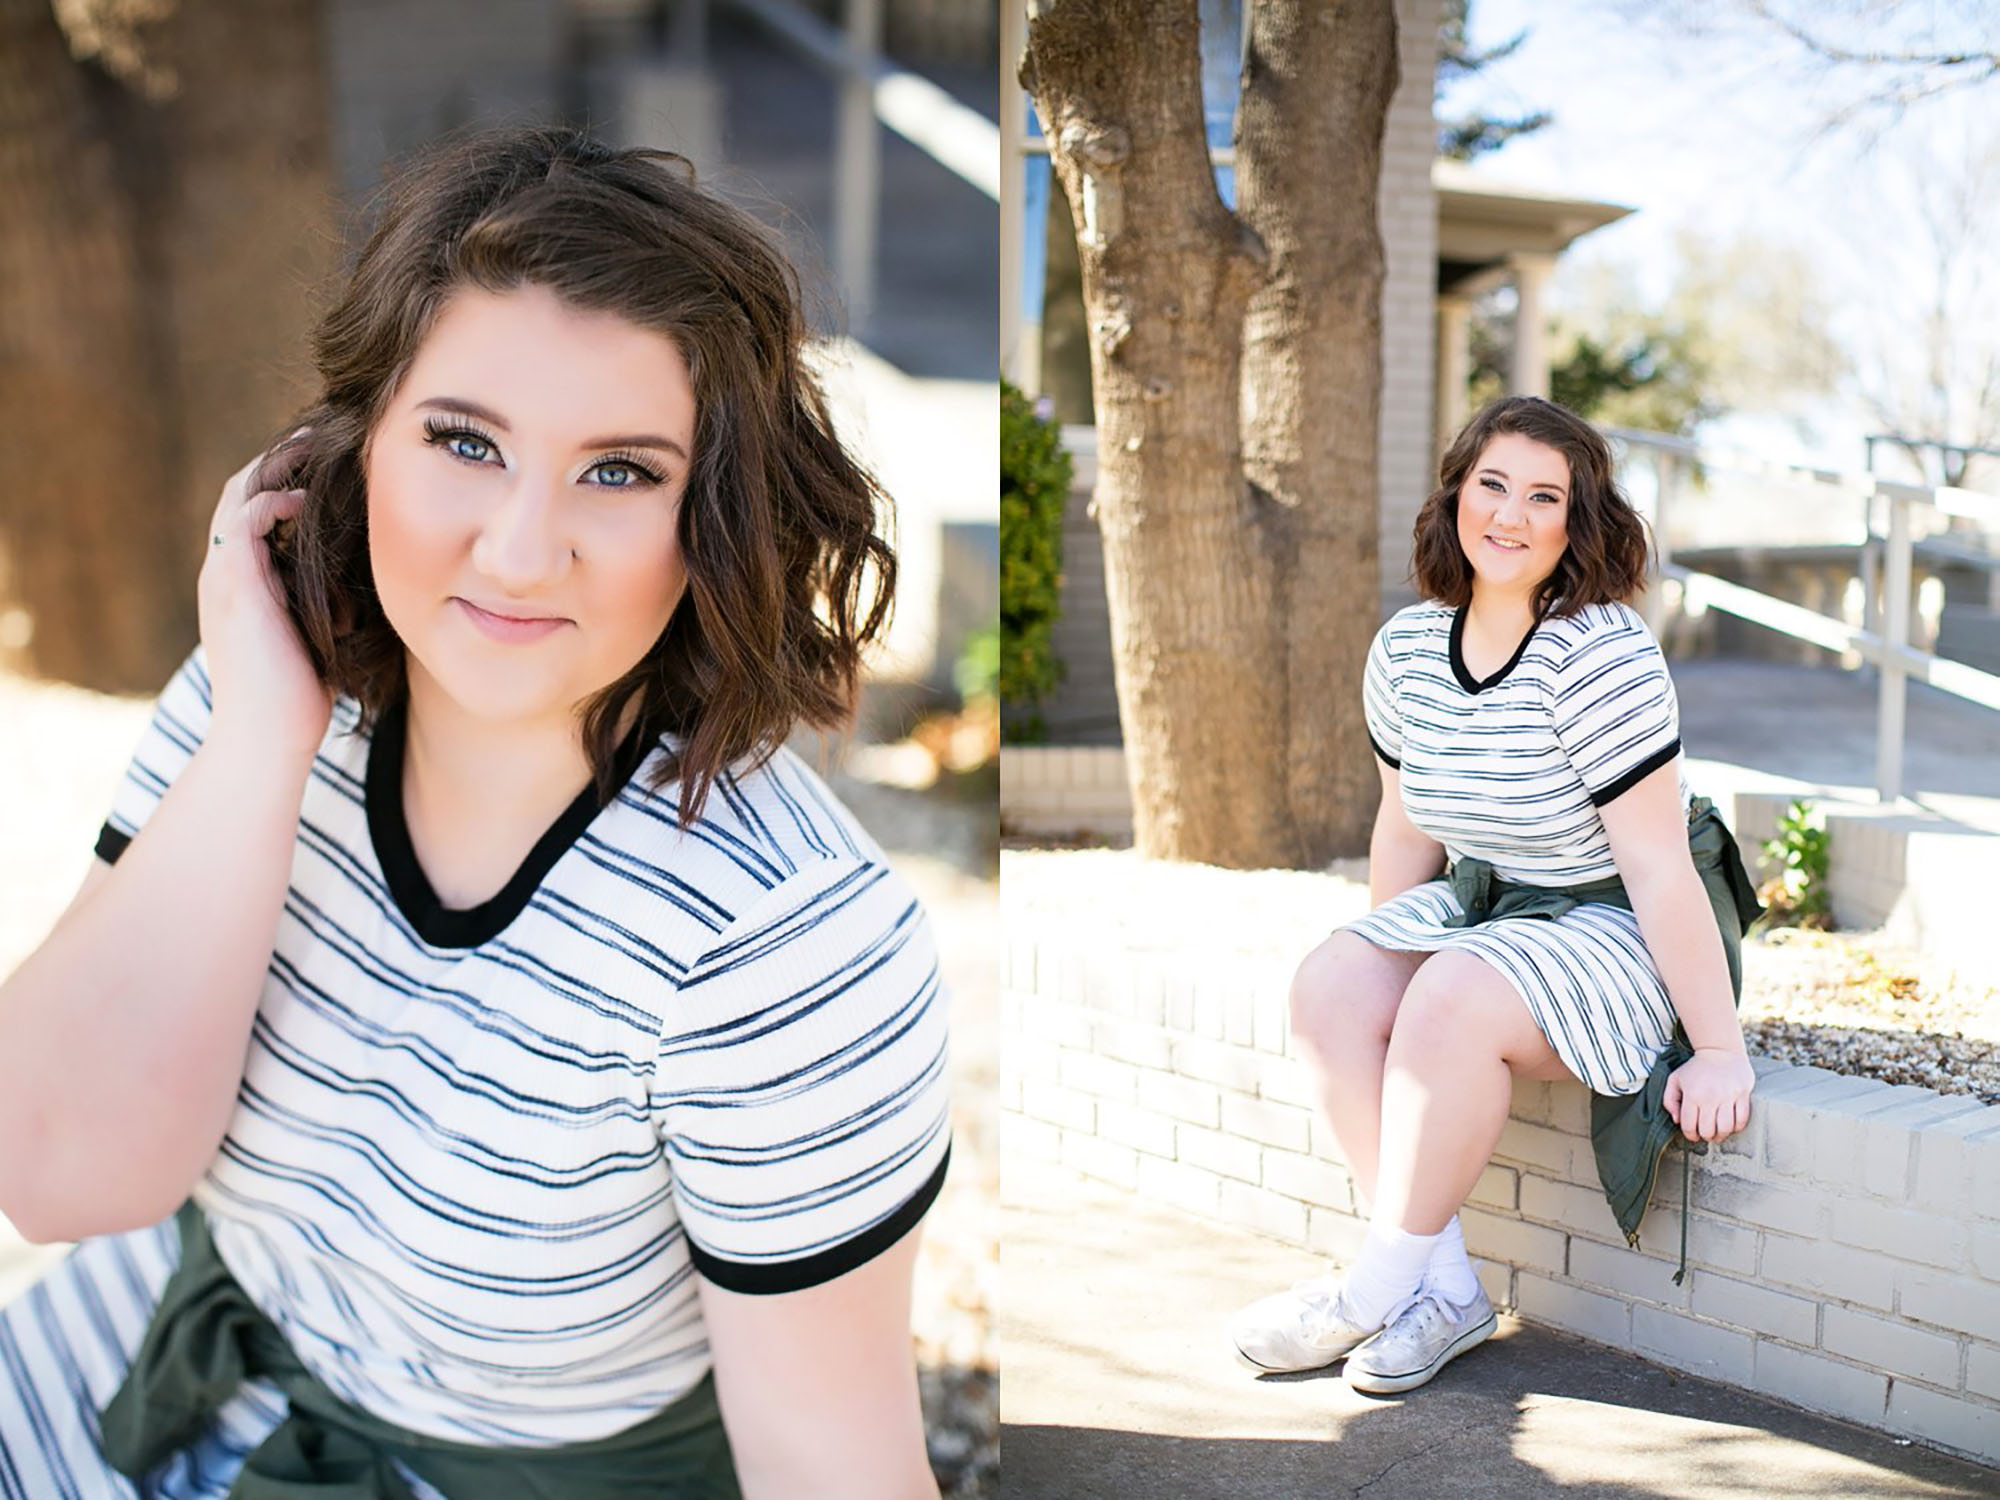 linda-mcmillan-photography-lubbock-texas-senior-portrait-catherine-01.jpg